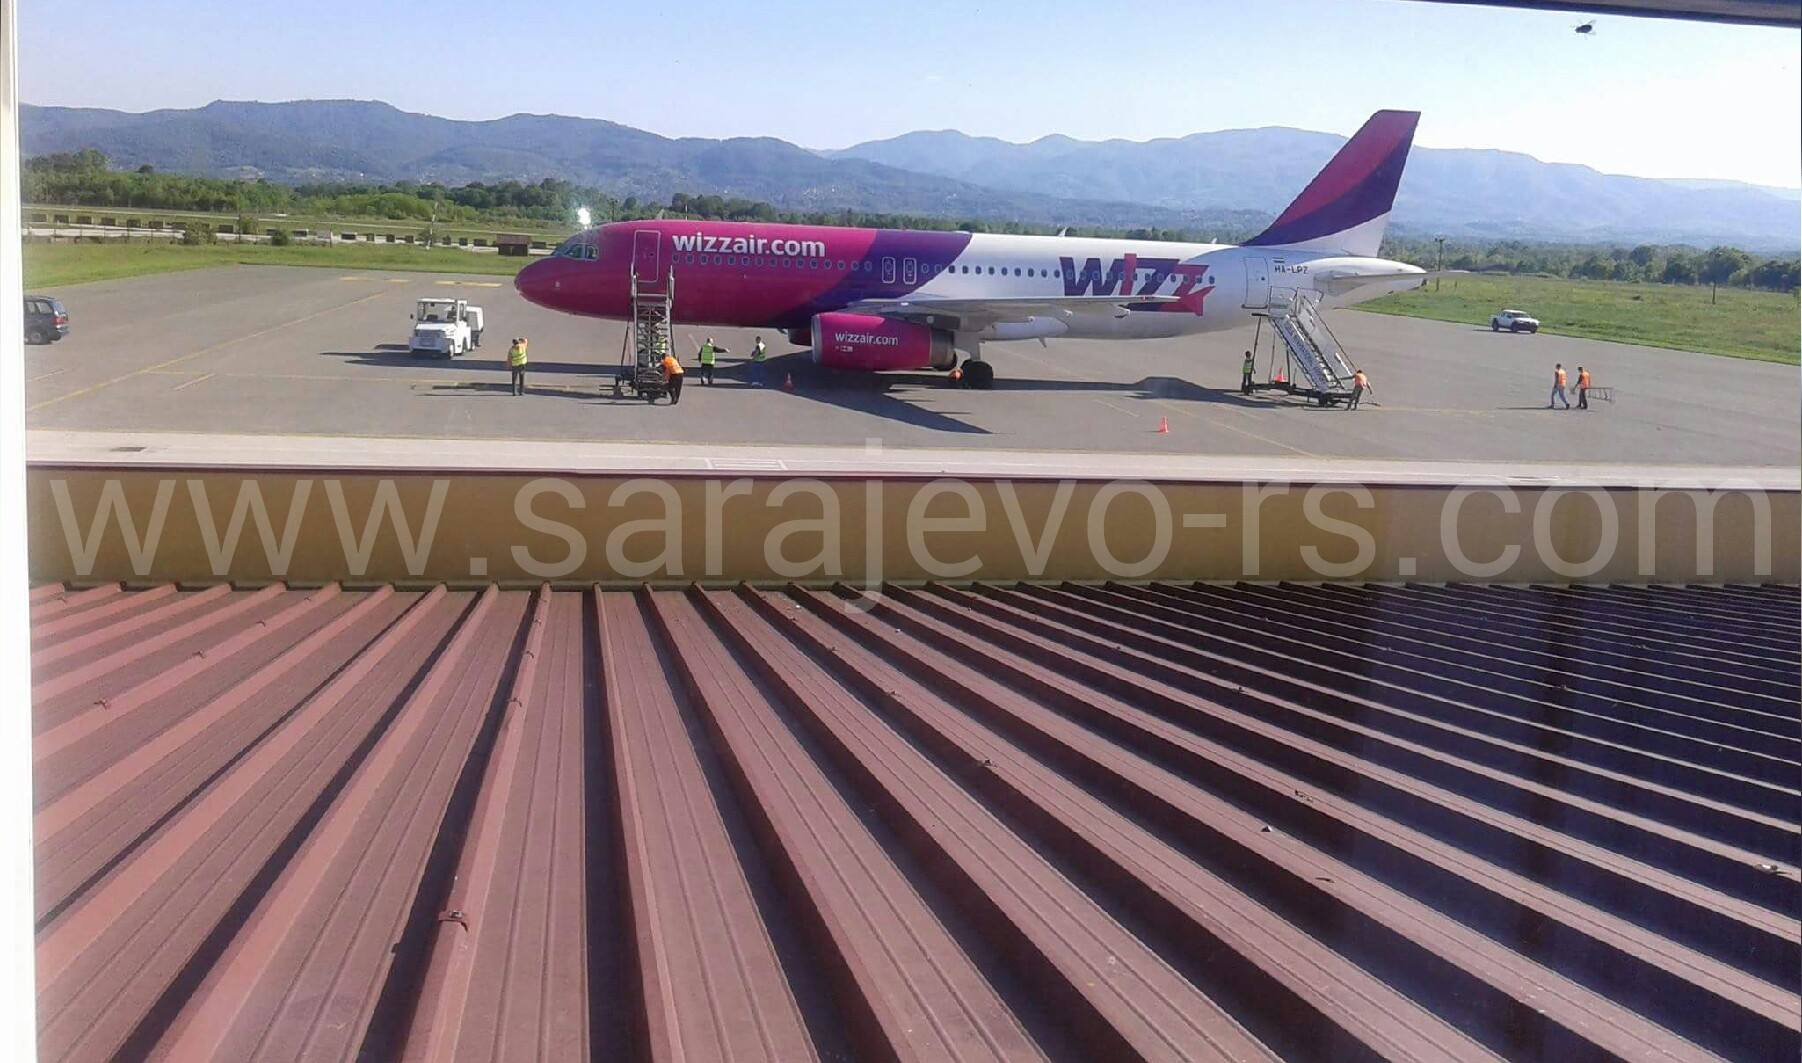 avion wizz air sa rs